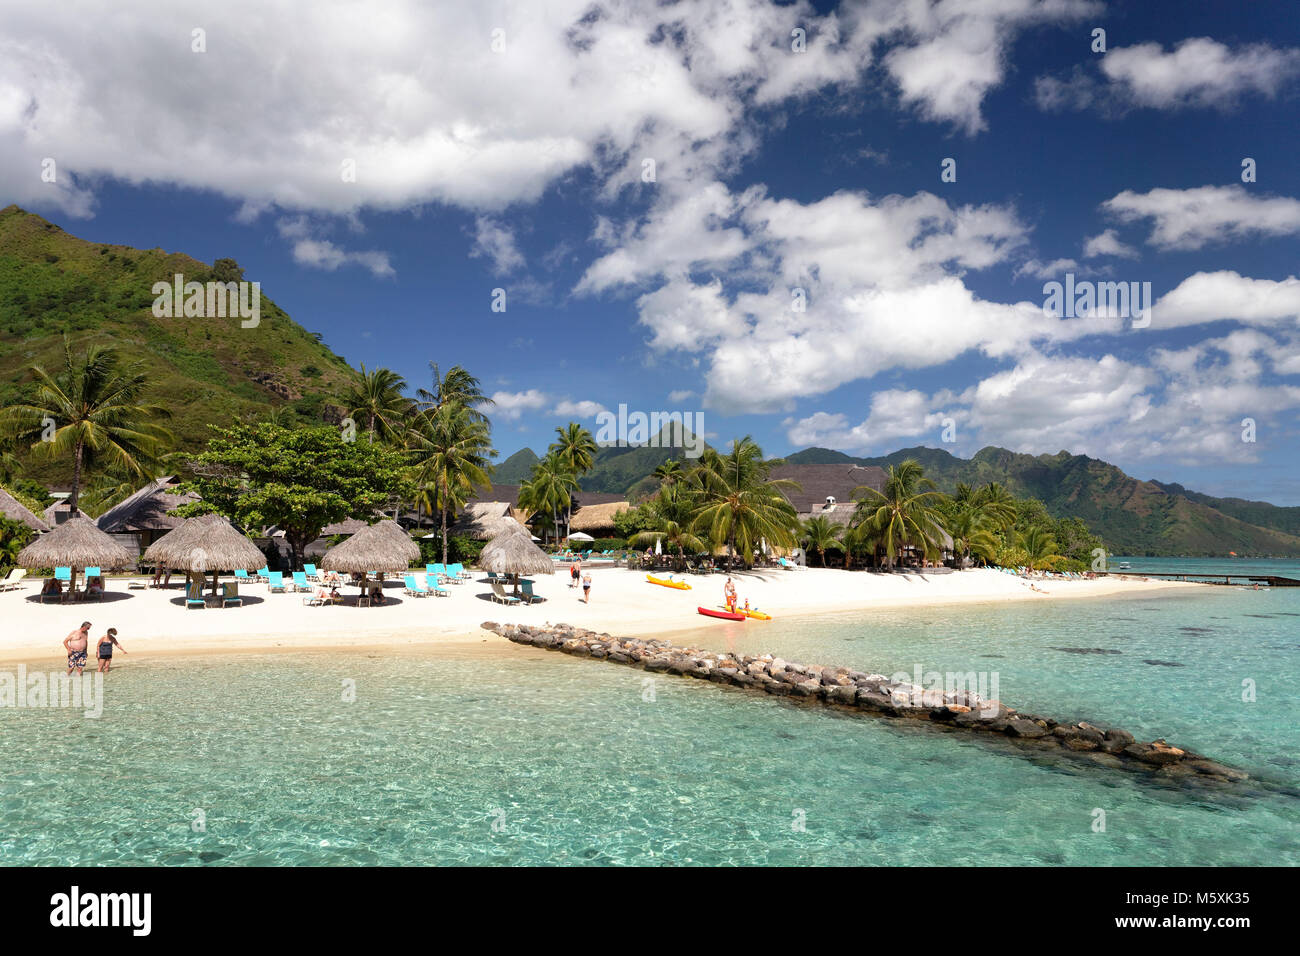 Beach with umbrellas and palm trees, Hilton Hotel, Moorea, Pacific Ocean, Society Islands, French Polynesia - Stock Image